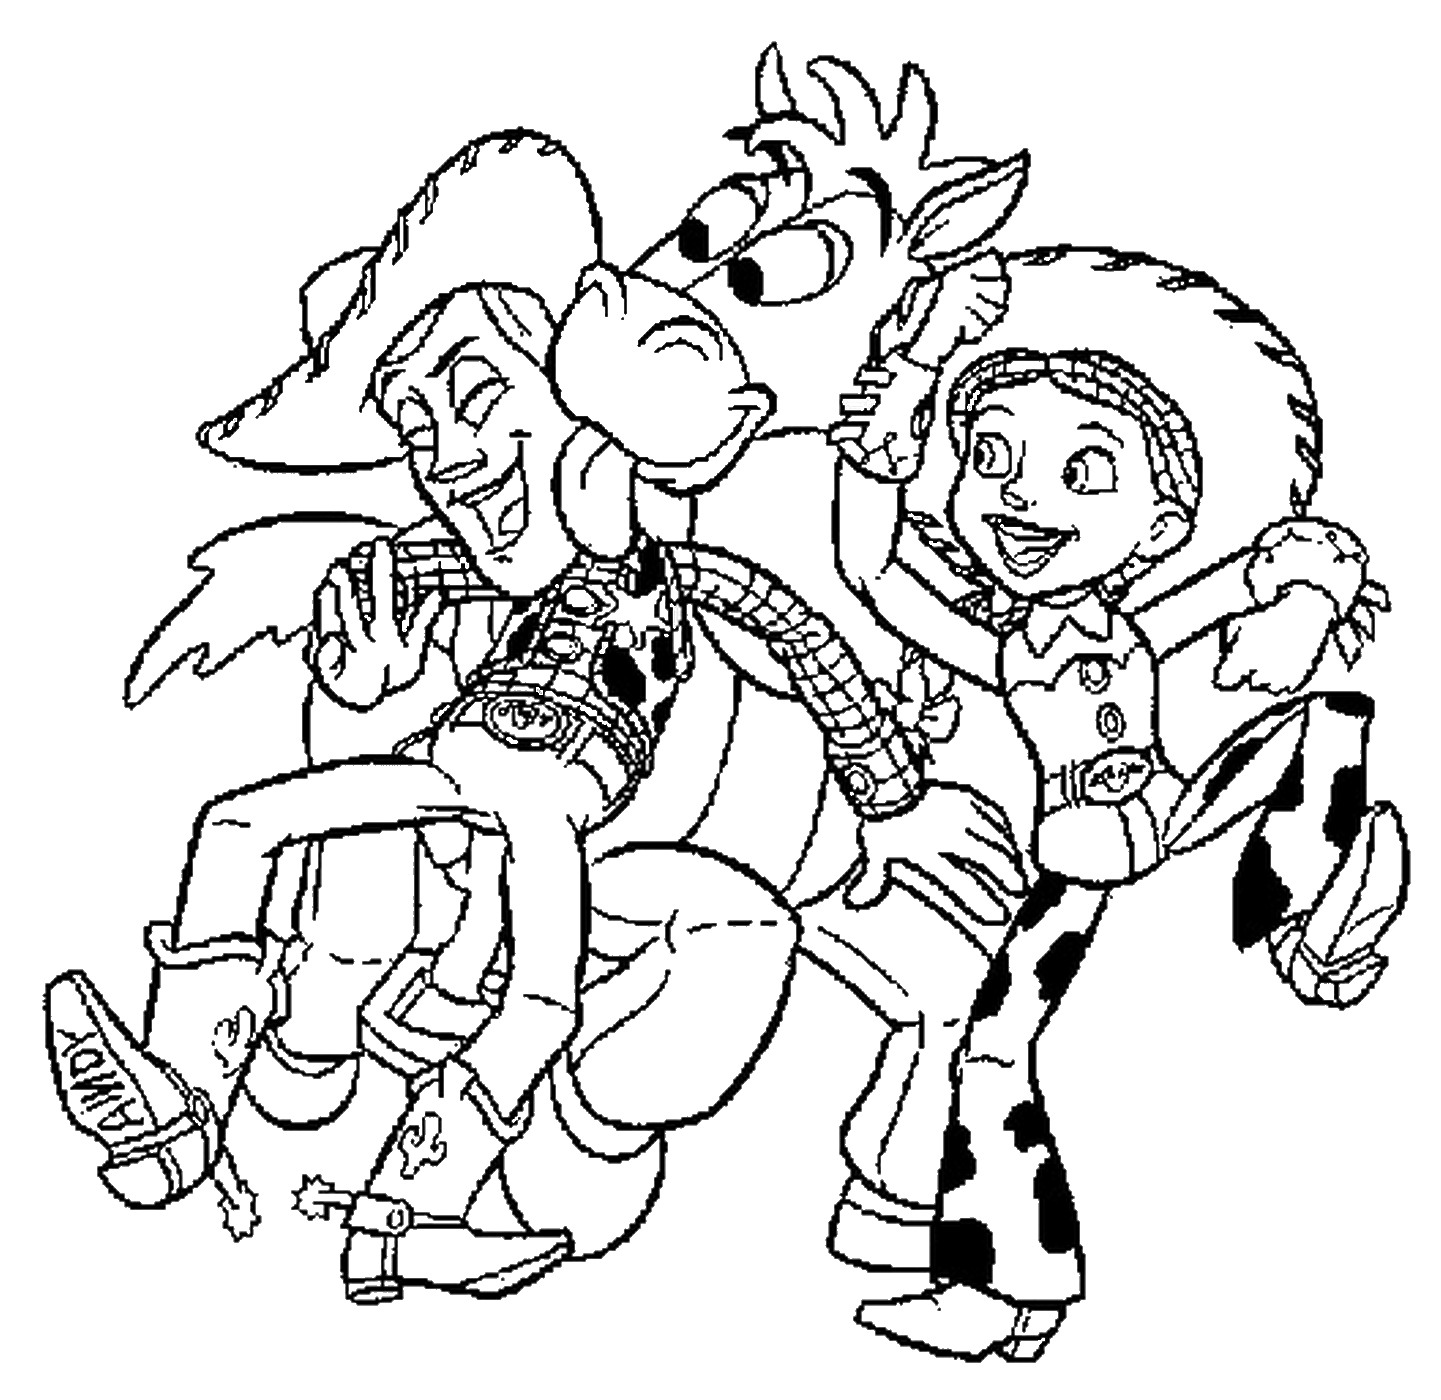 coloring pages of toy story toy story coloring pages pages coloring toy of story